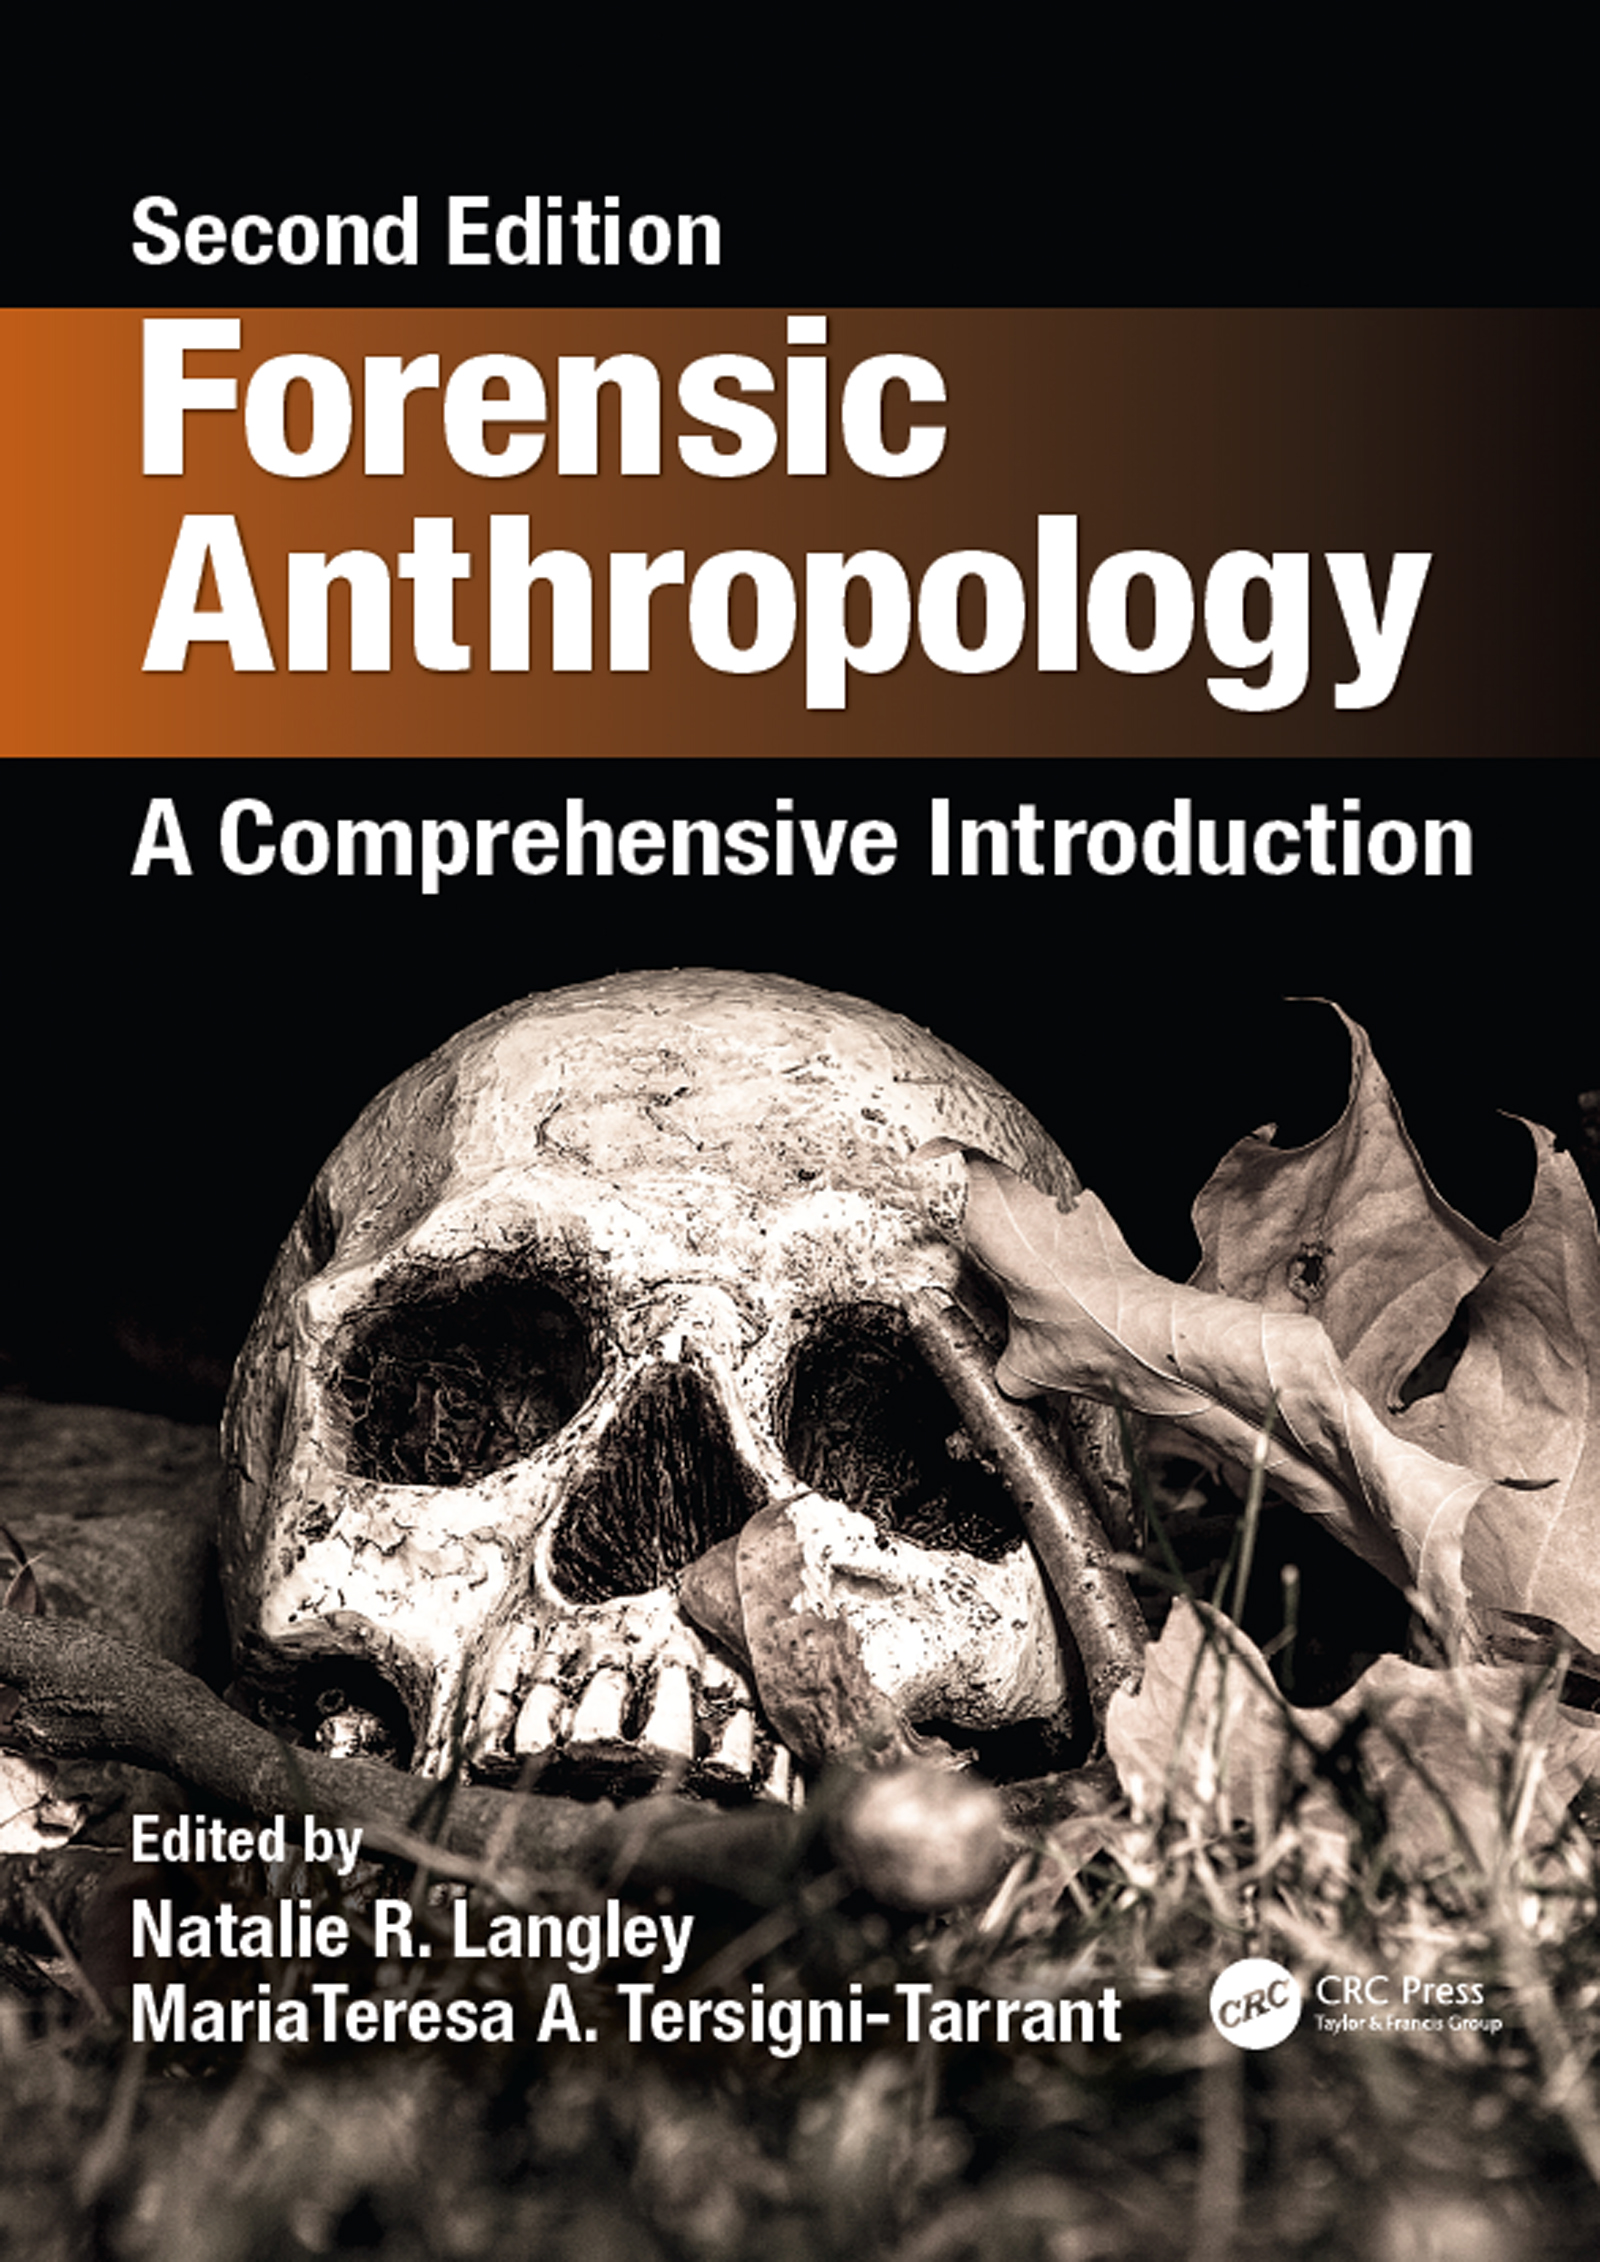 forensic anthropologist Dead men tell no tales, but their bones can it just takes a particular kind of scientist to read the clues that tell the story dr biology sits down with guest tony falsetti, a forensic anthropologist who knows his way around a skeleton.